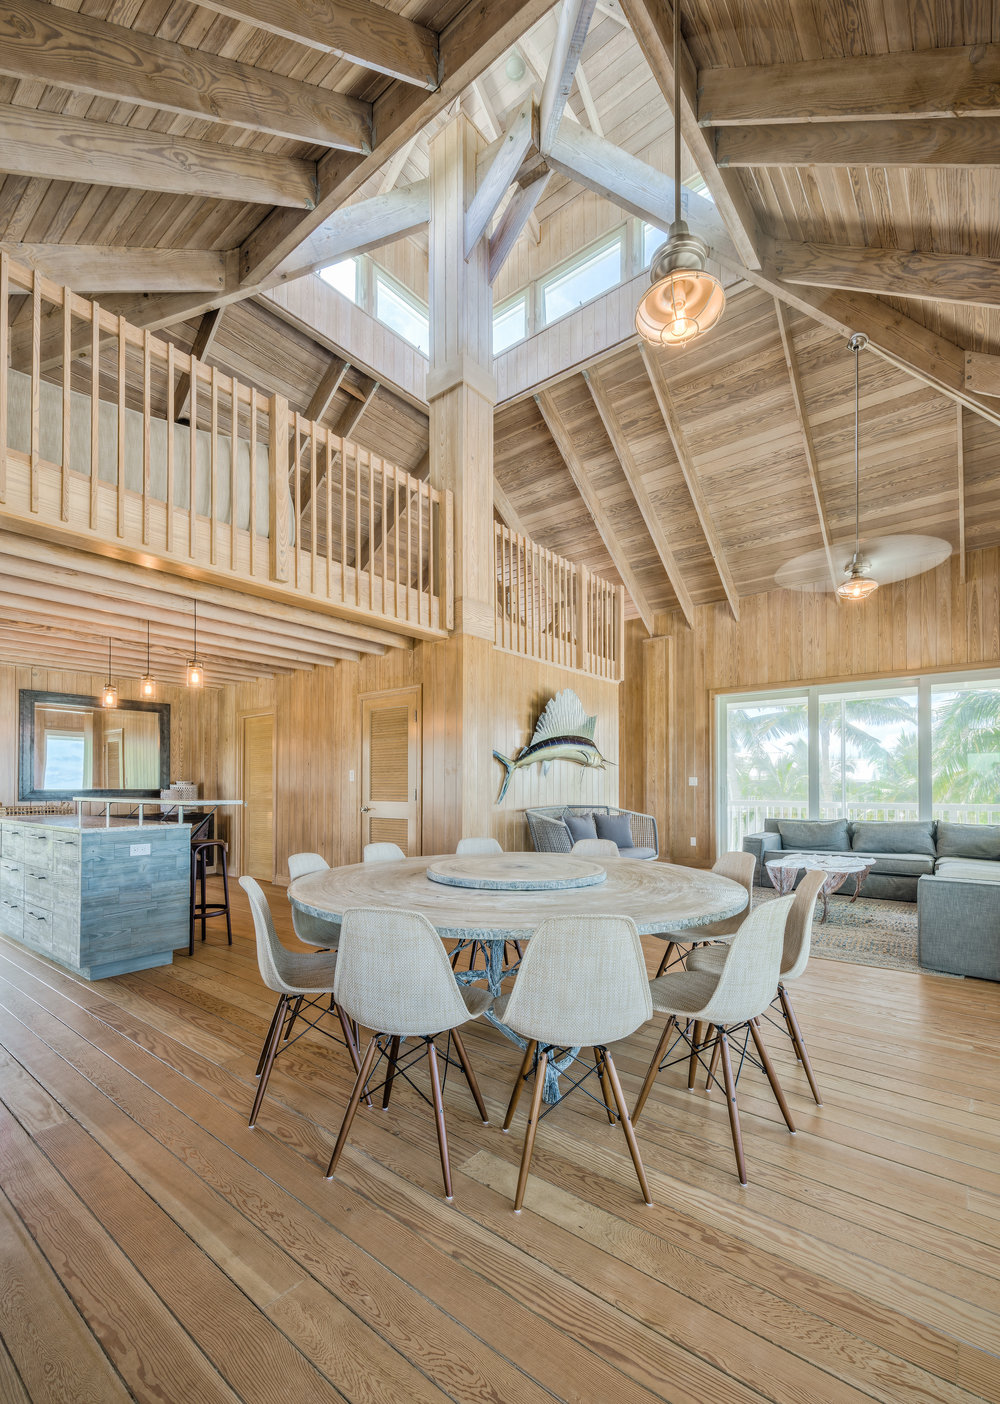 Private Island Beach House Kitchen This architecturally redesigned space was expanded to achieve an open-concept floor plan for entertaining. Custom weathered wood cabinetry, vintage industrial hardware, and artist commissioned sculpted furnishings.